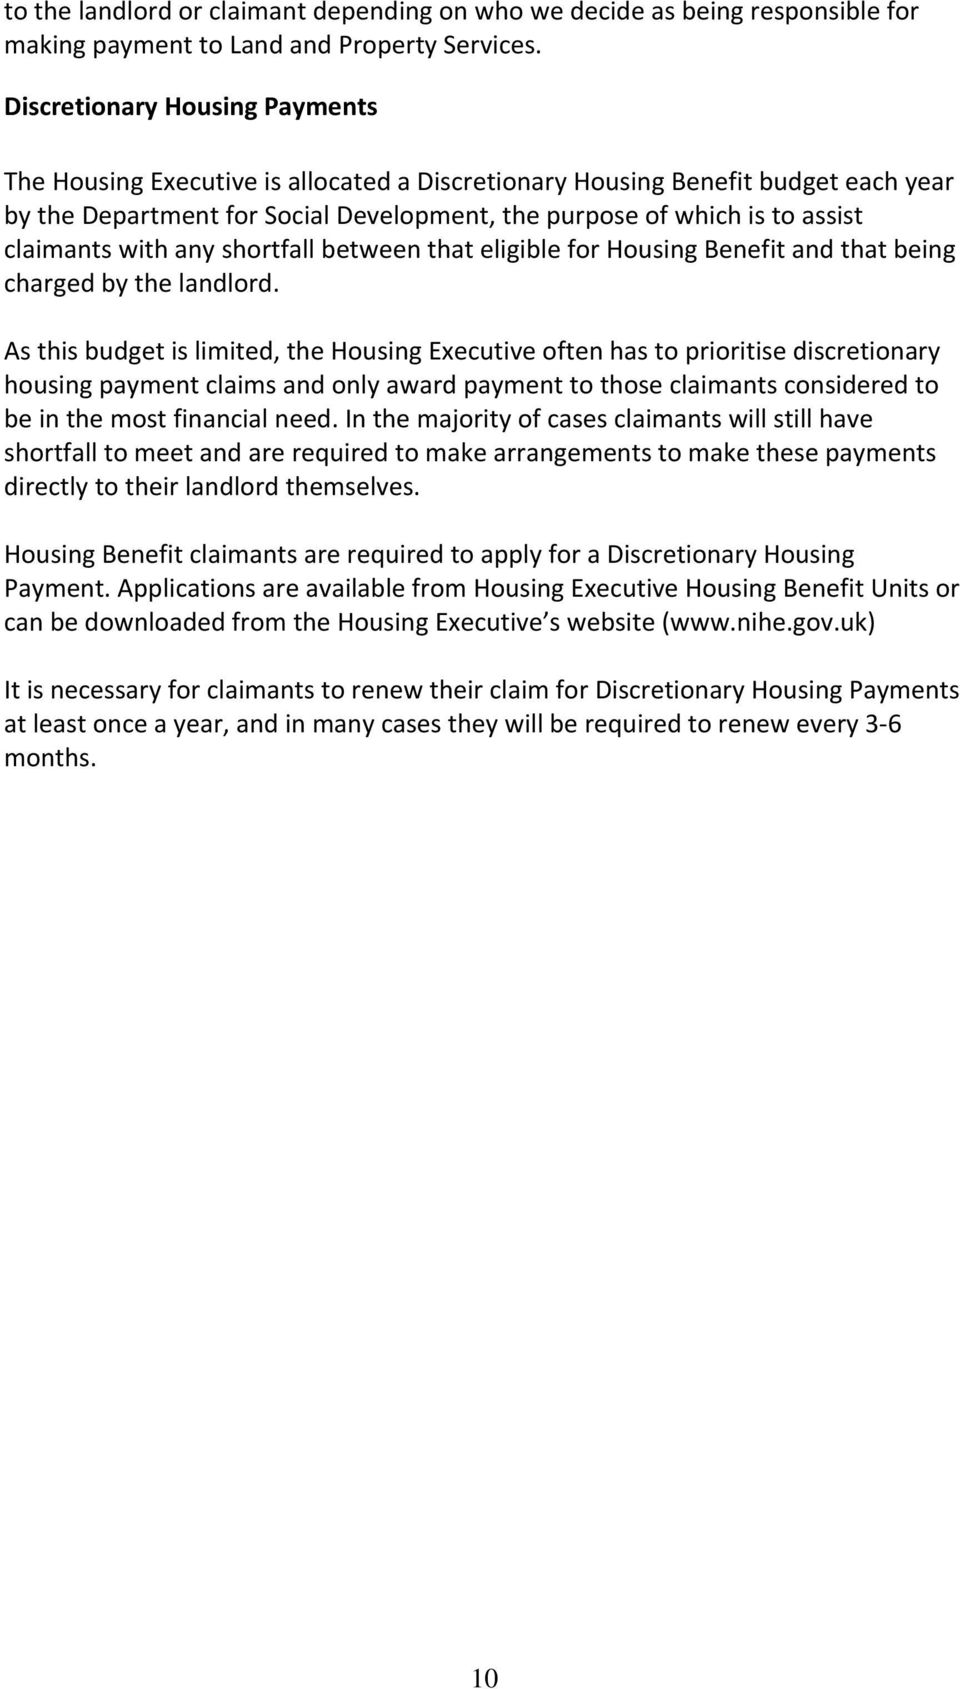 claimants with any shortfall between that eligible for Housing Benefit and that being charged by the landlord.